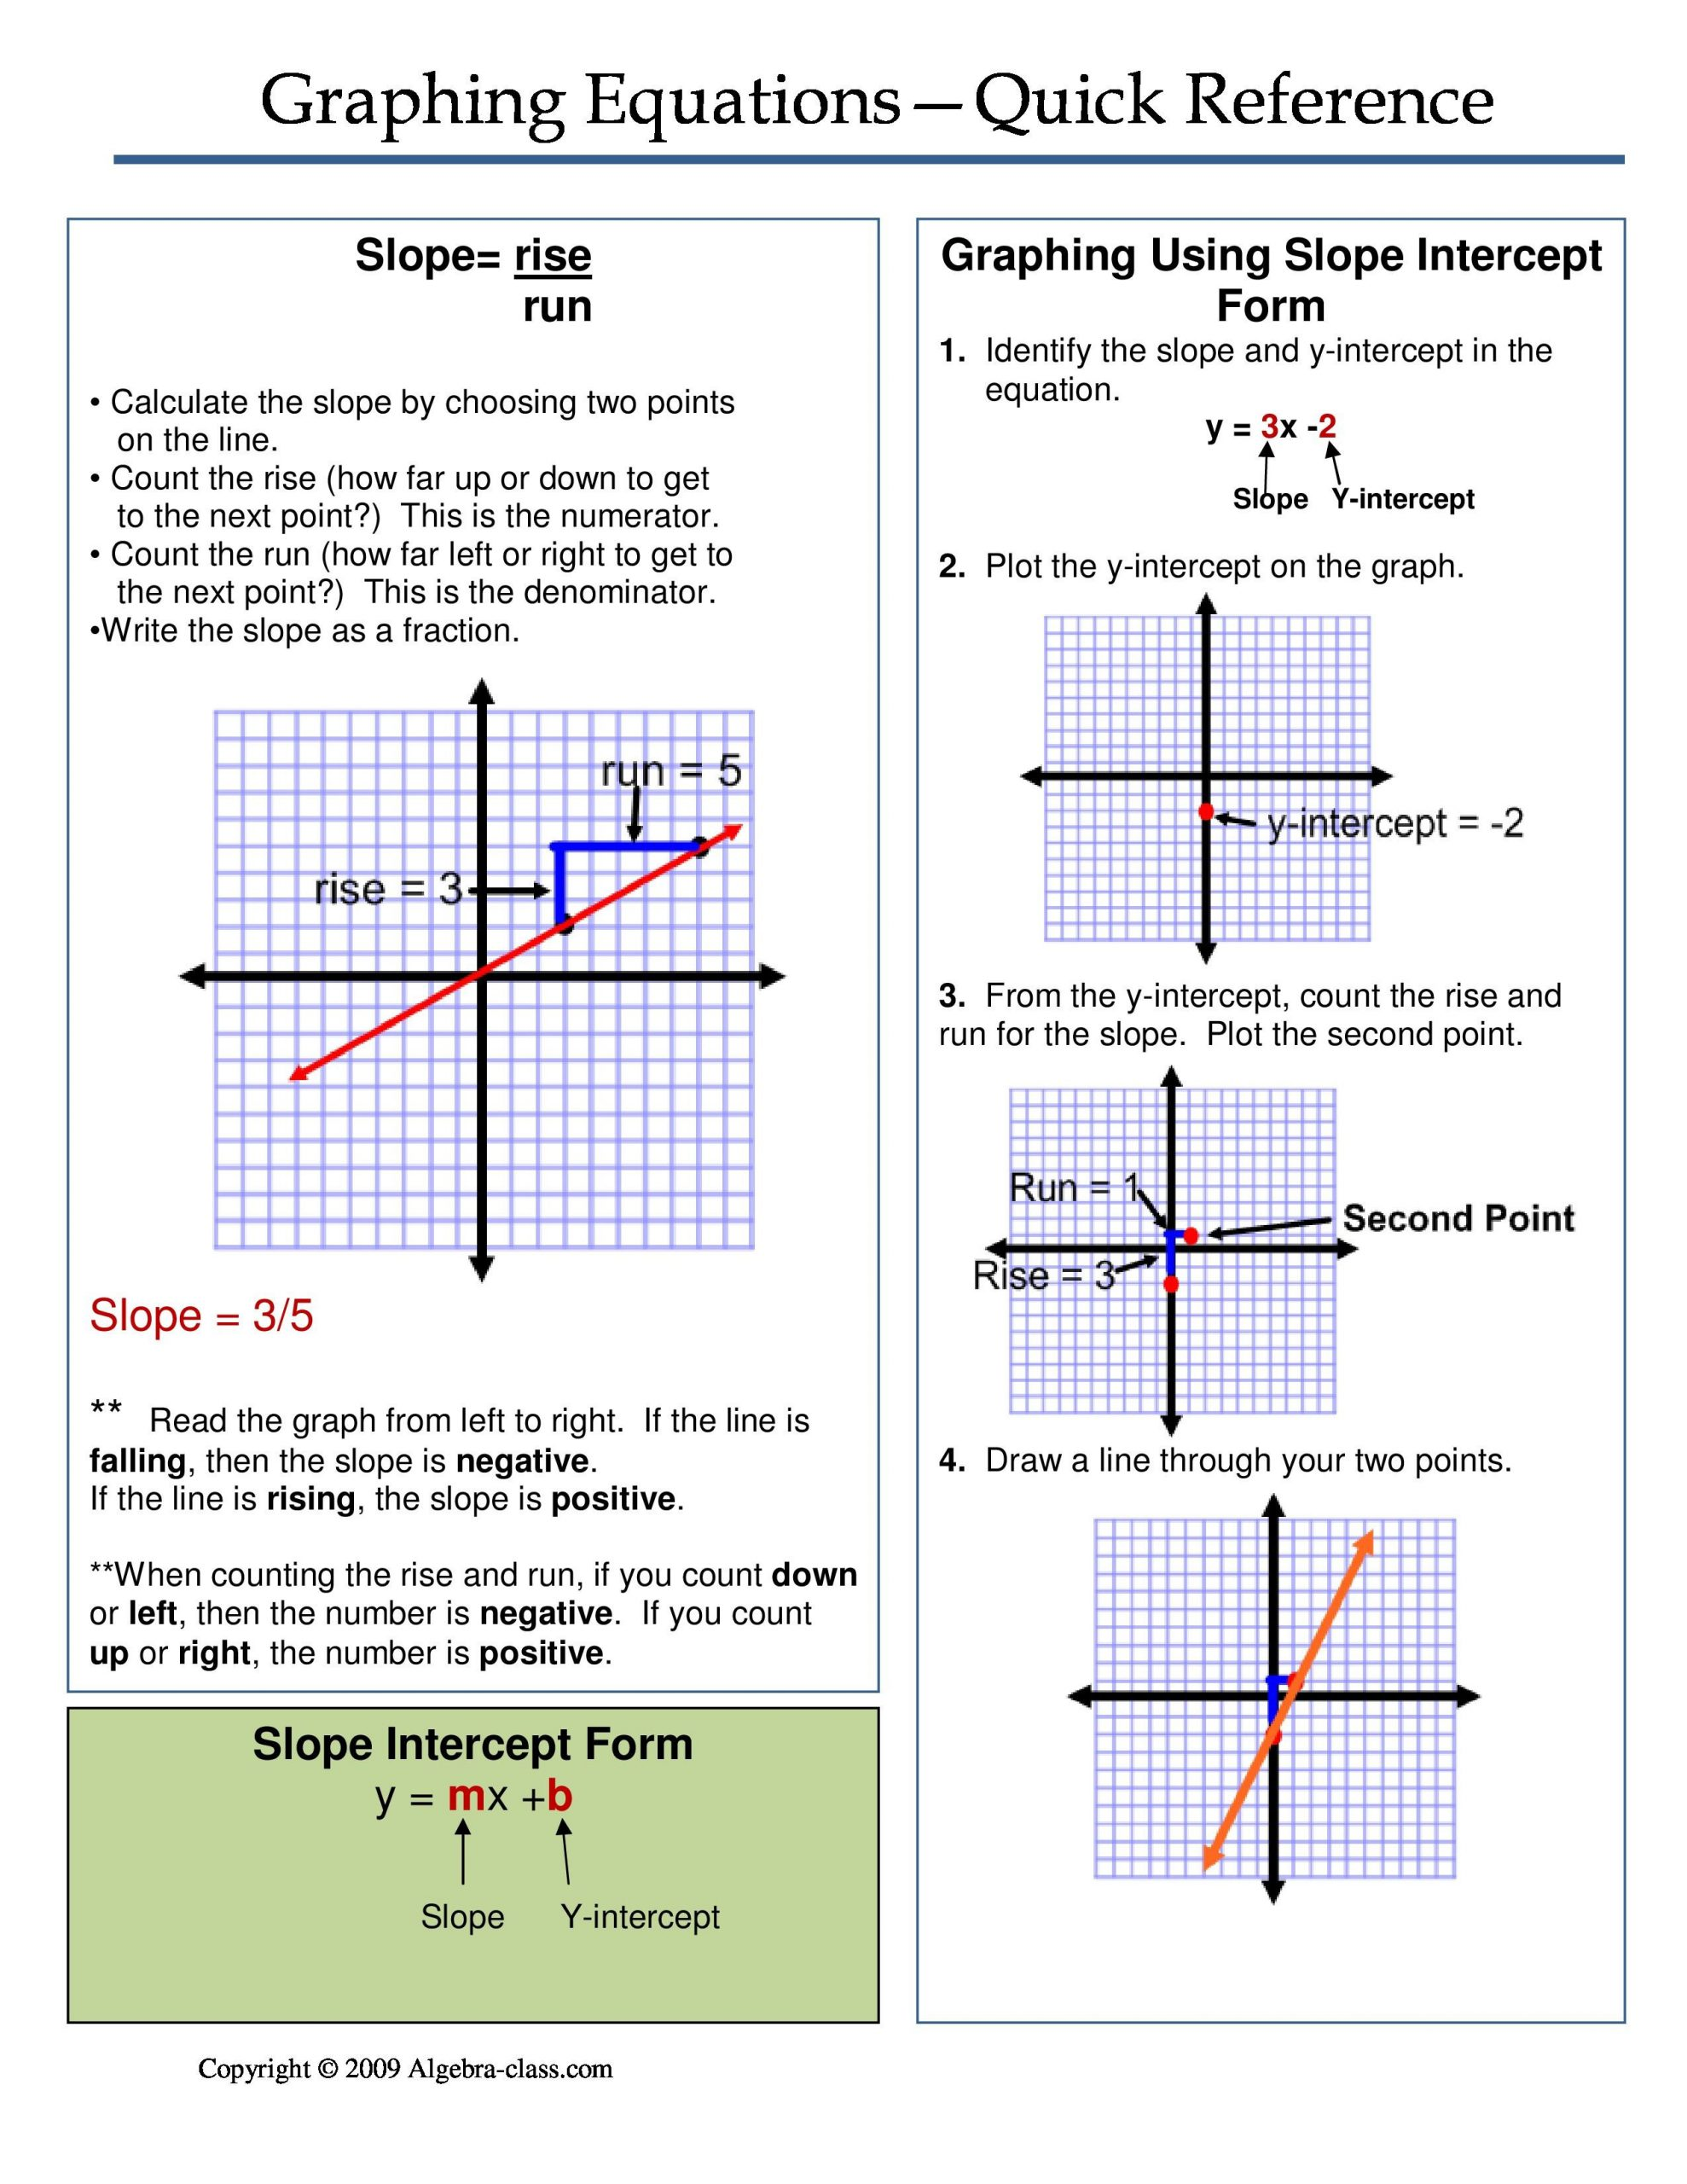 Graphing Linear Functions Worksheet E Page Notes Worksheet for the Graphing Equations Unit